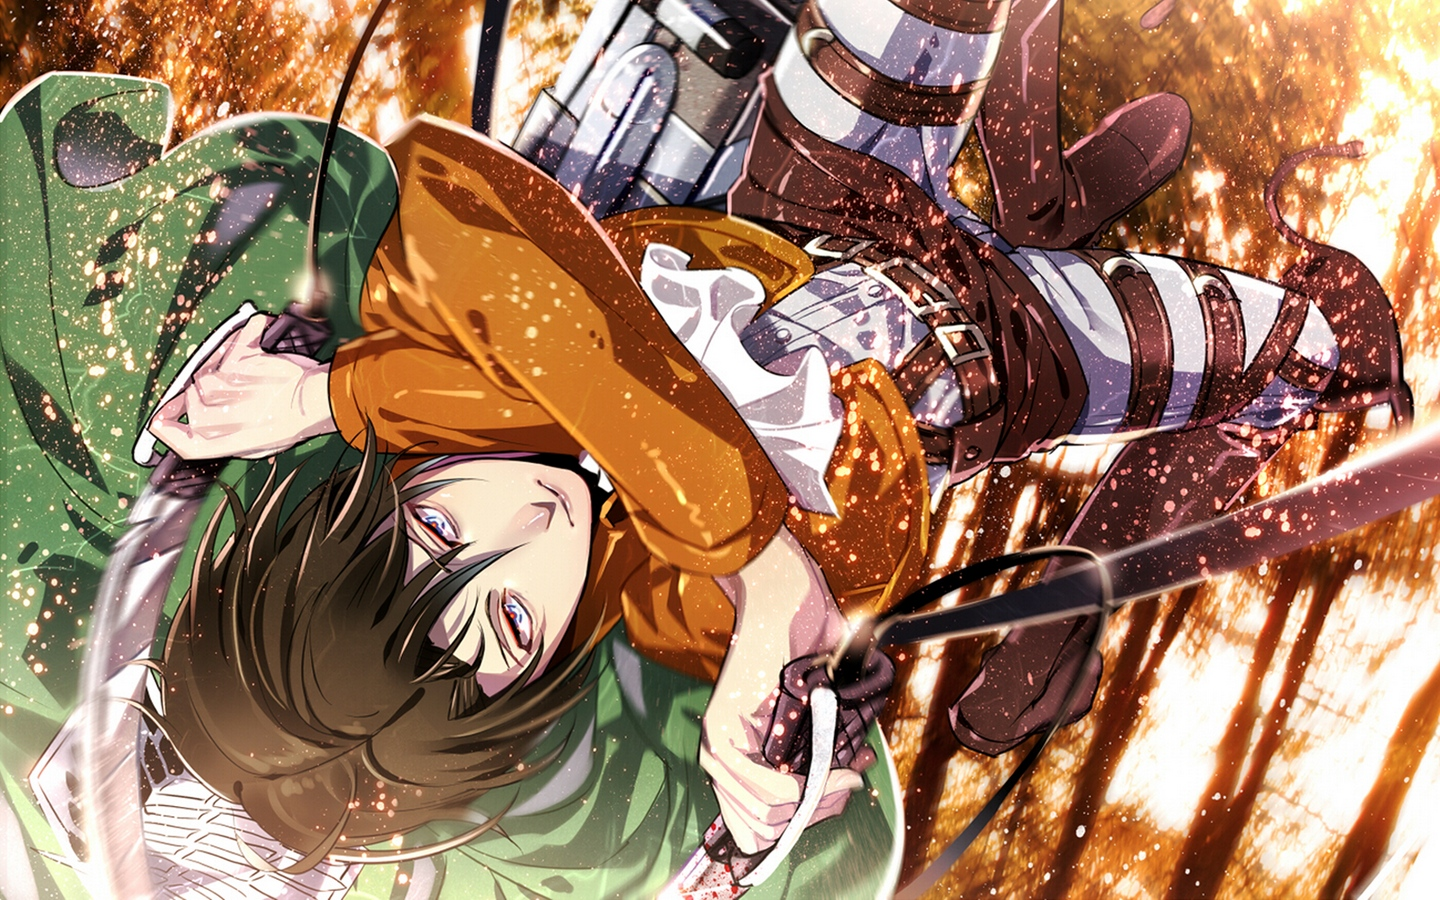 Wallpaper Attack On Titan Shingeki No Kyojin Guy 1440x900 Download Hd Wallpaper Wallpapertip